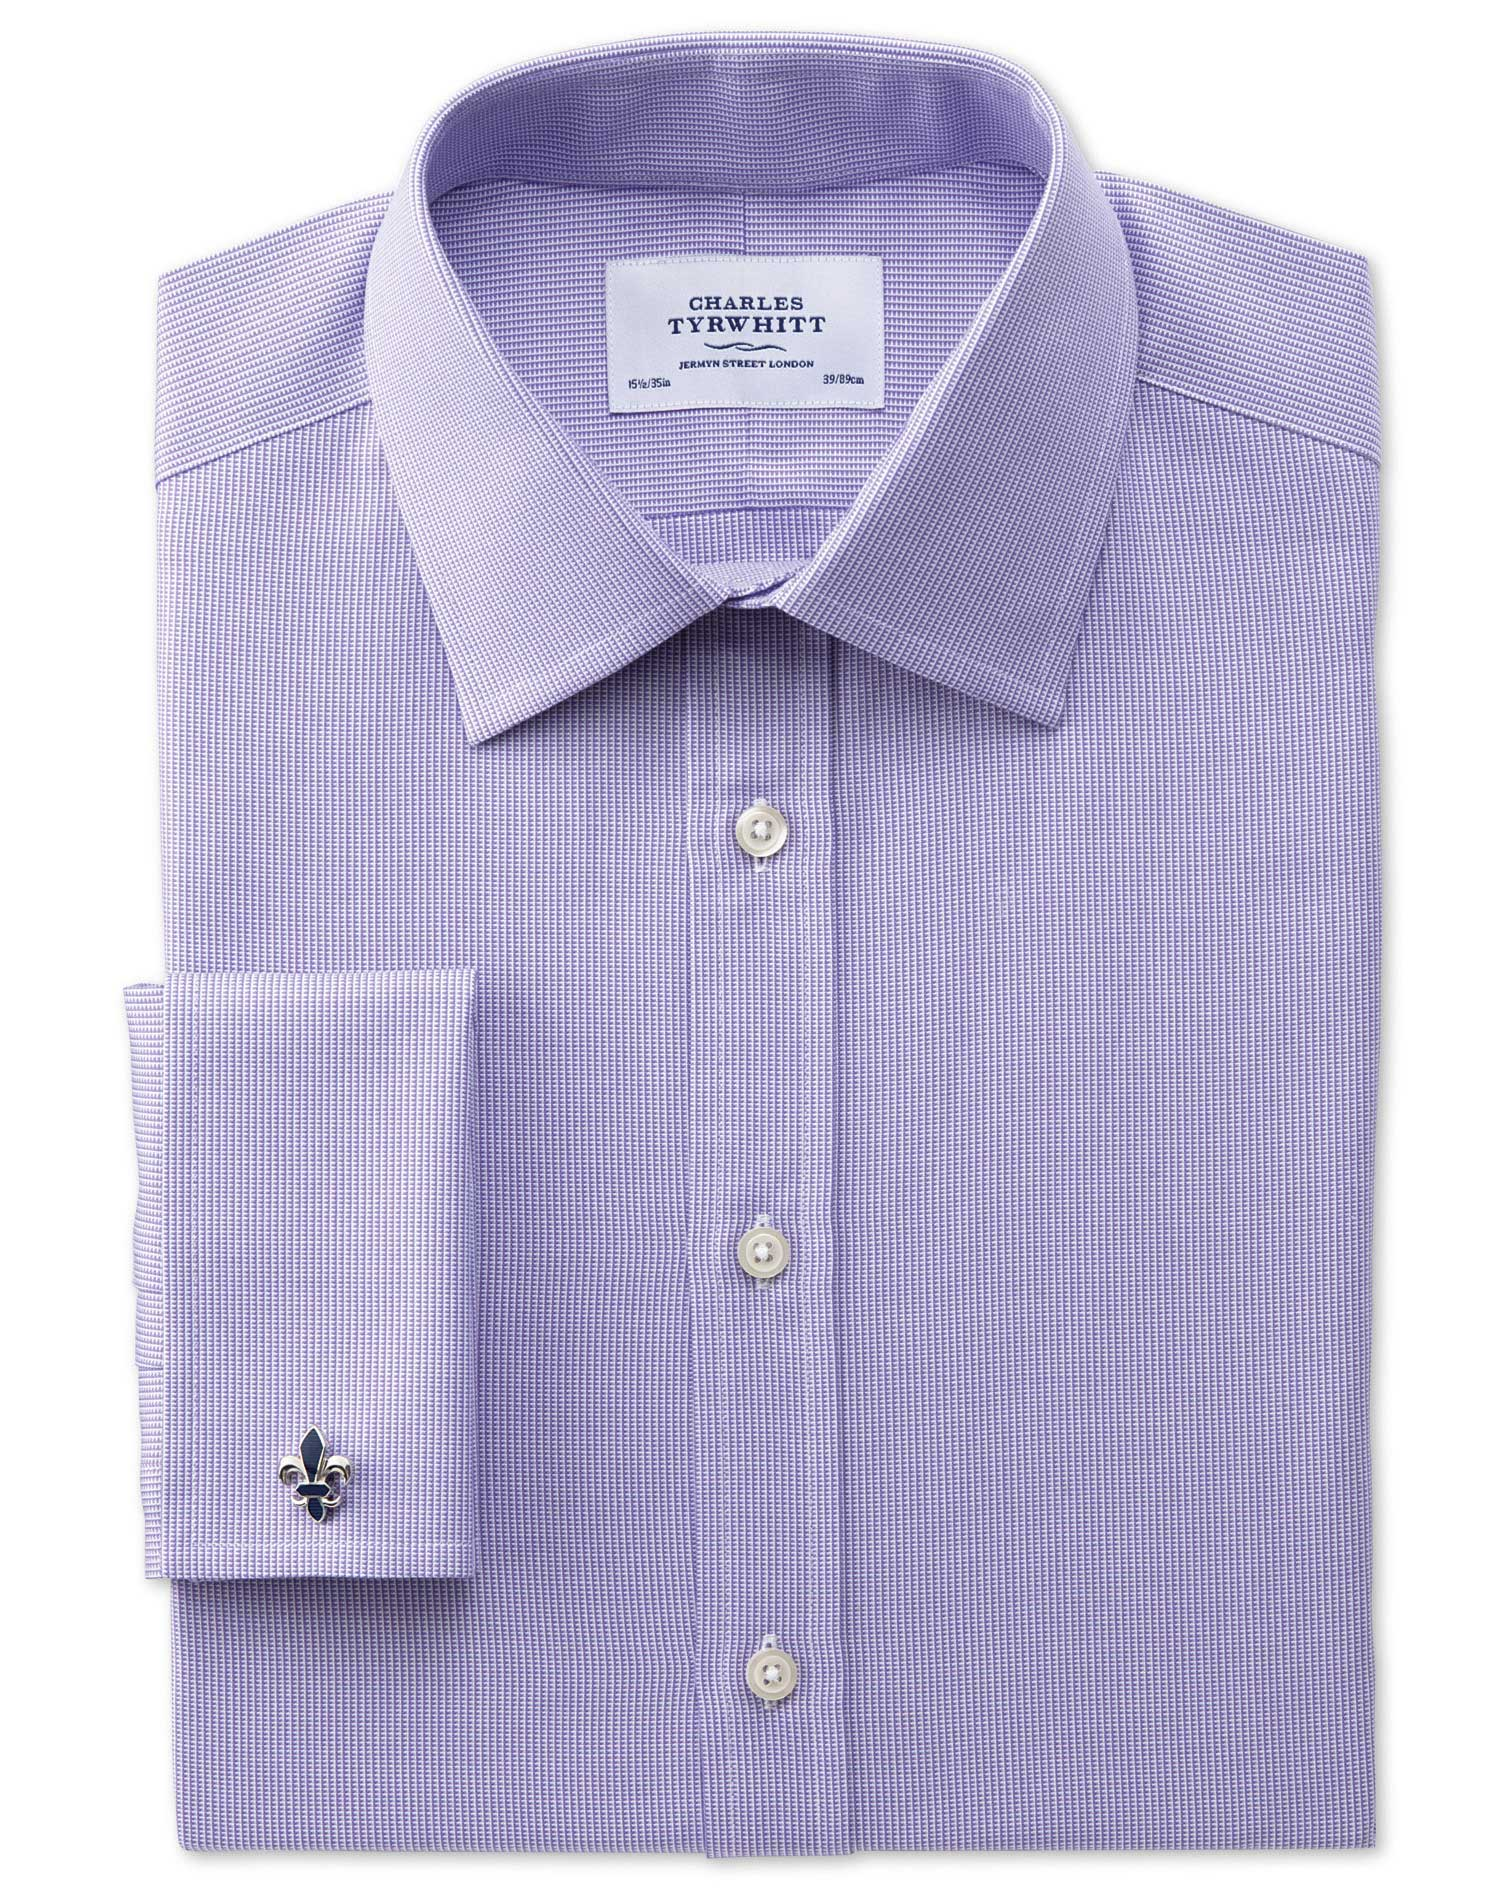 Slim Fit Oxford Lilac Cotton Formal Shirt Double Cuff Size 17/38 by Charles Tyrwhitt